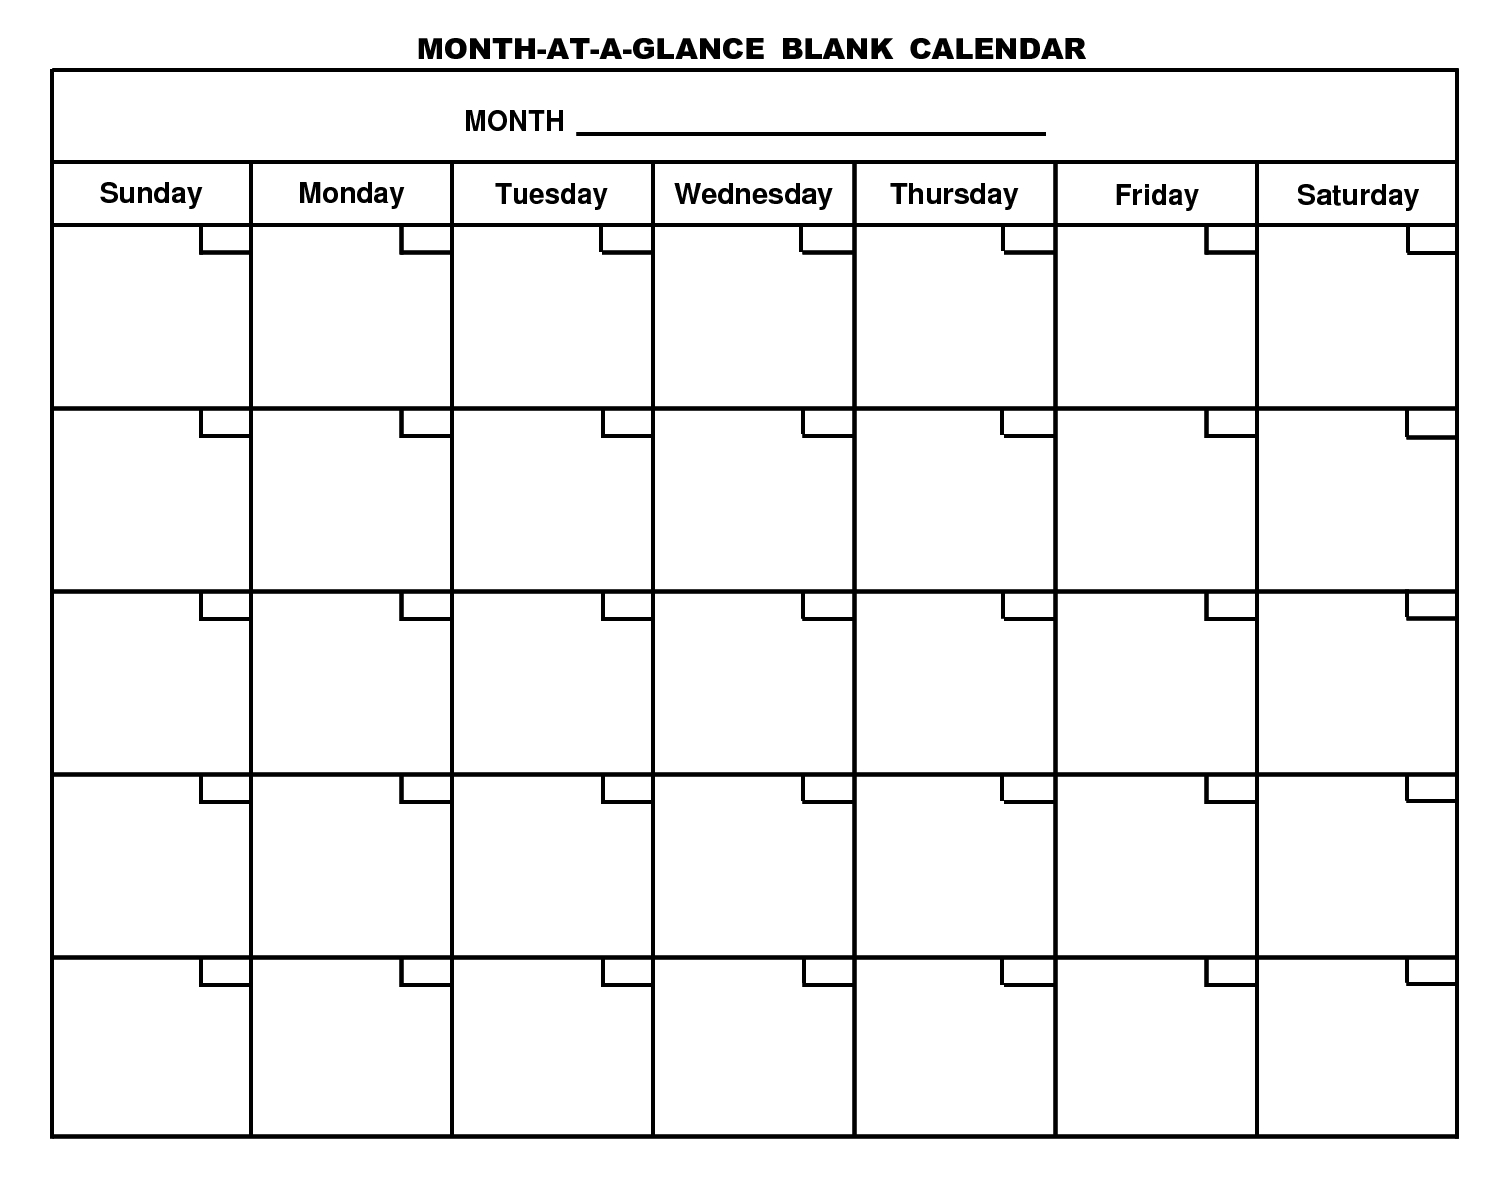 Free Fill In Calendar Templates Month | Calendar Printing Example in Free Printable Calendar Templates Month